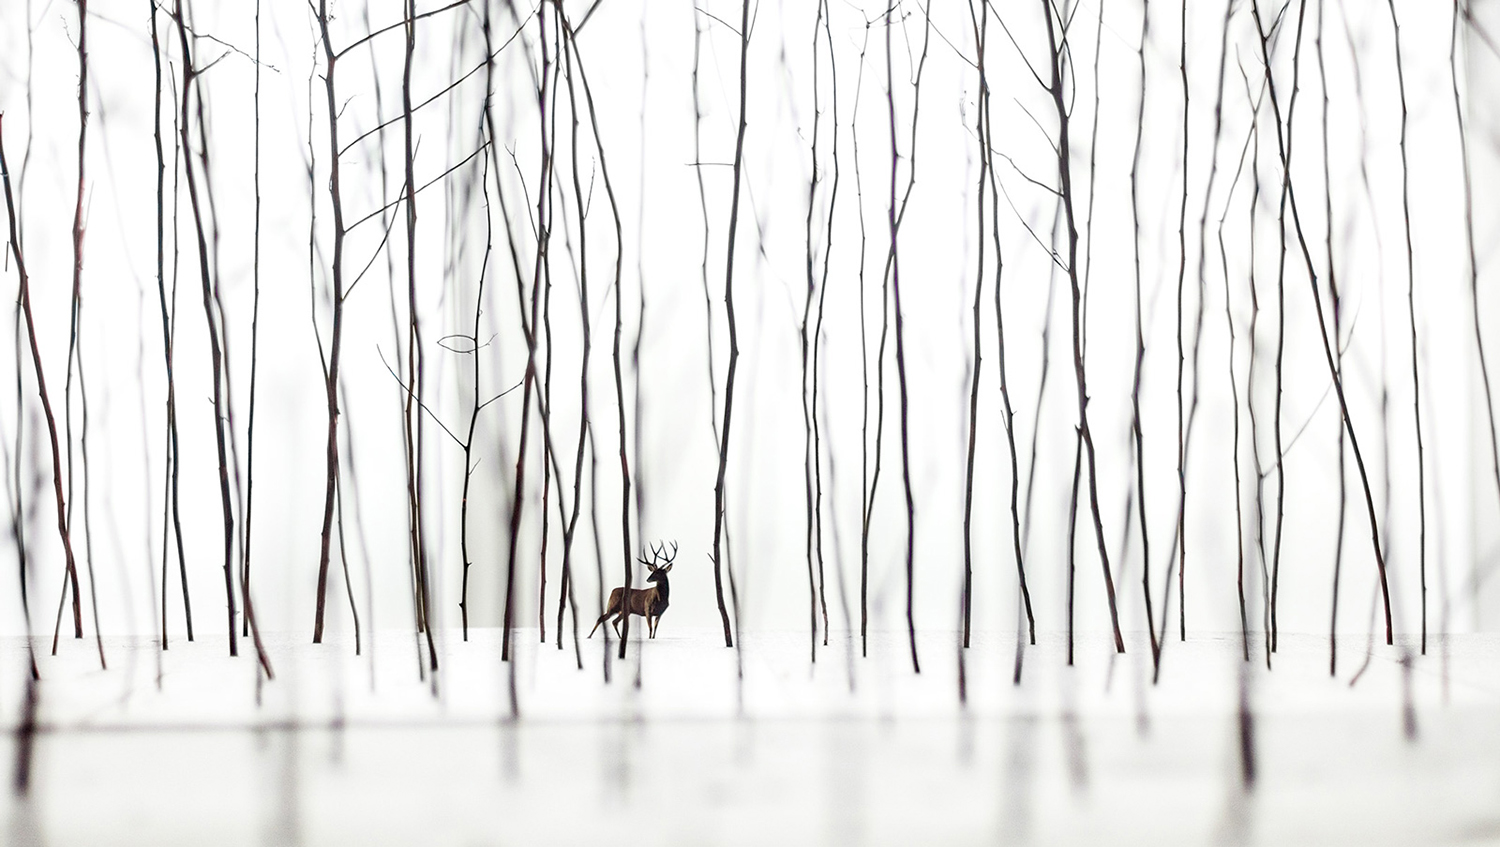 Todd Murphy,  Stag in Woods , 2016, archival digital print on panel, 44 x 84 inches